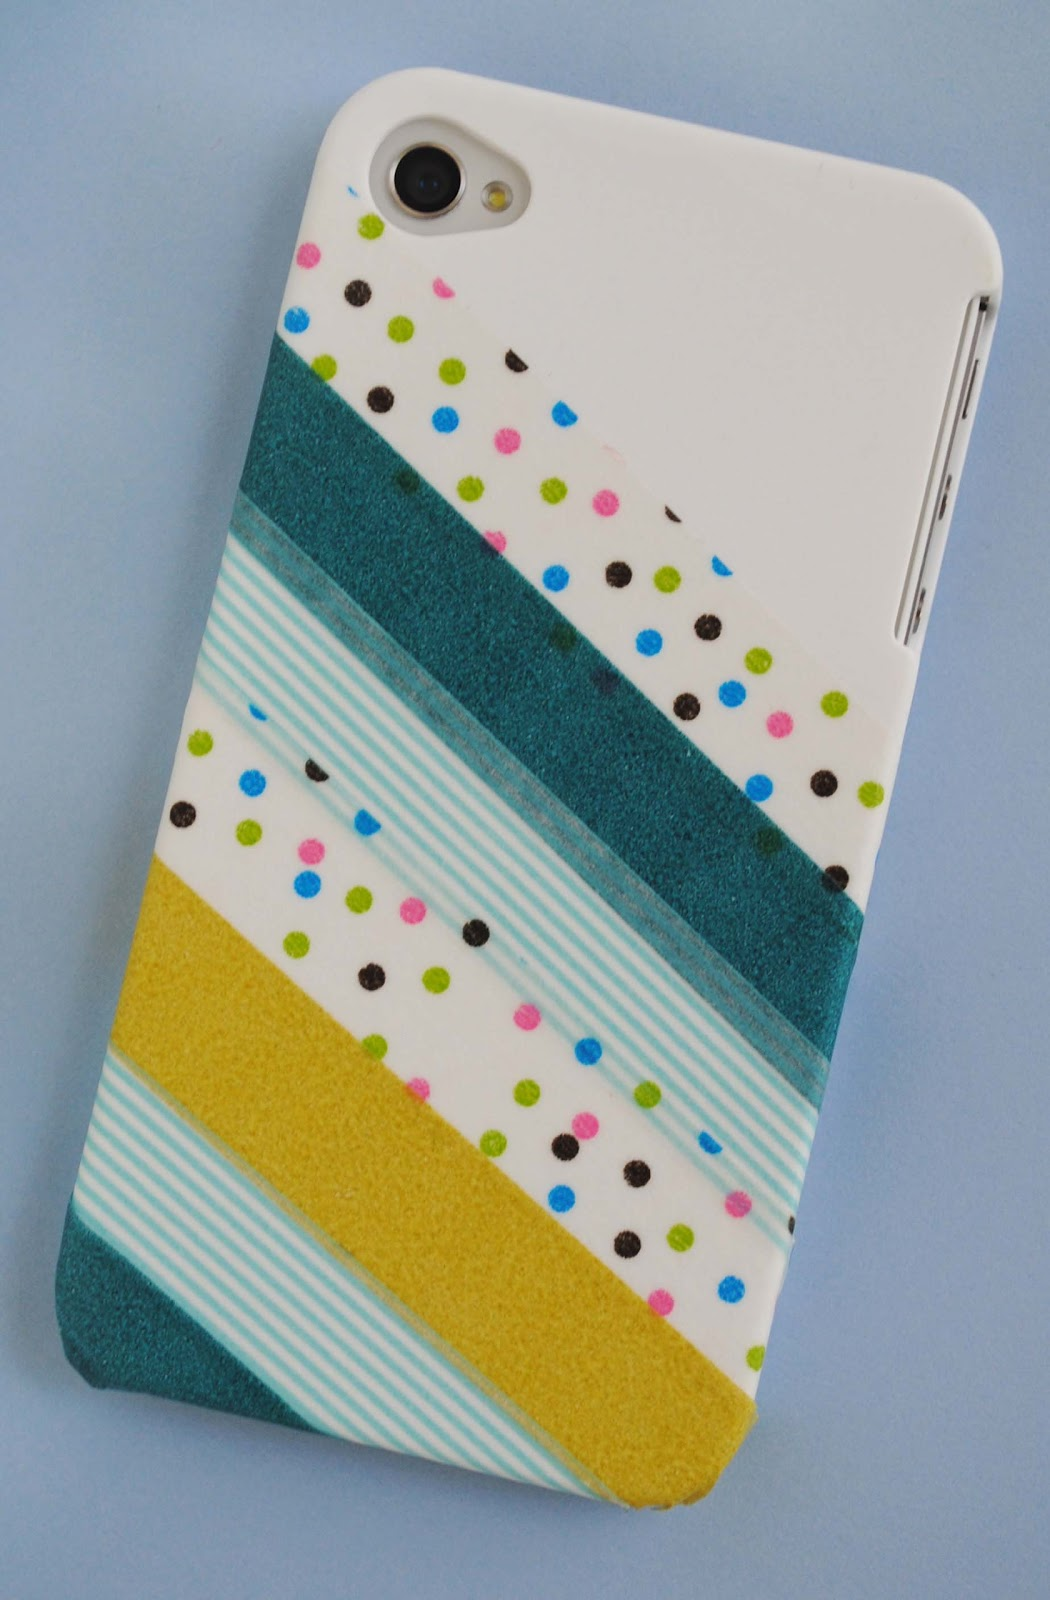 Zakka life craft washi tape phone cover for Crafts with washi tape